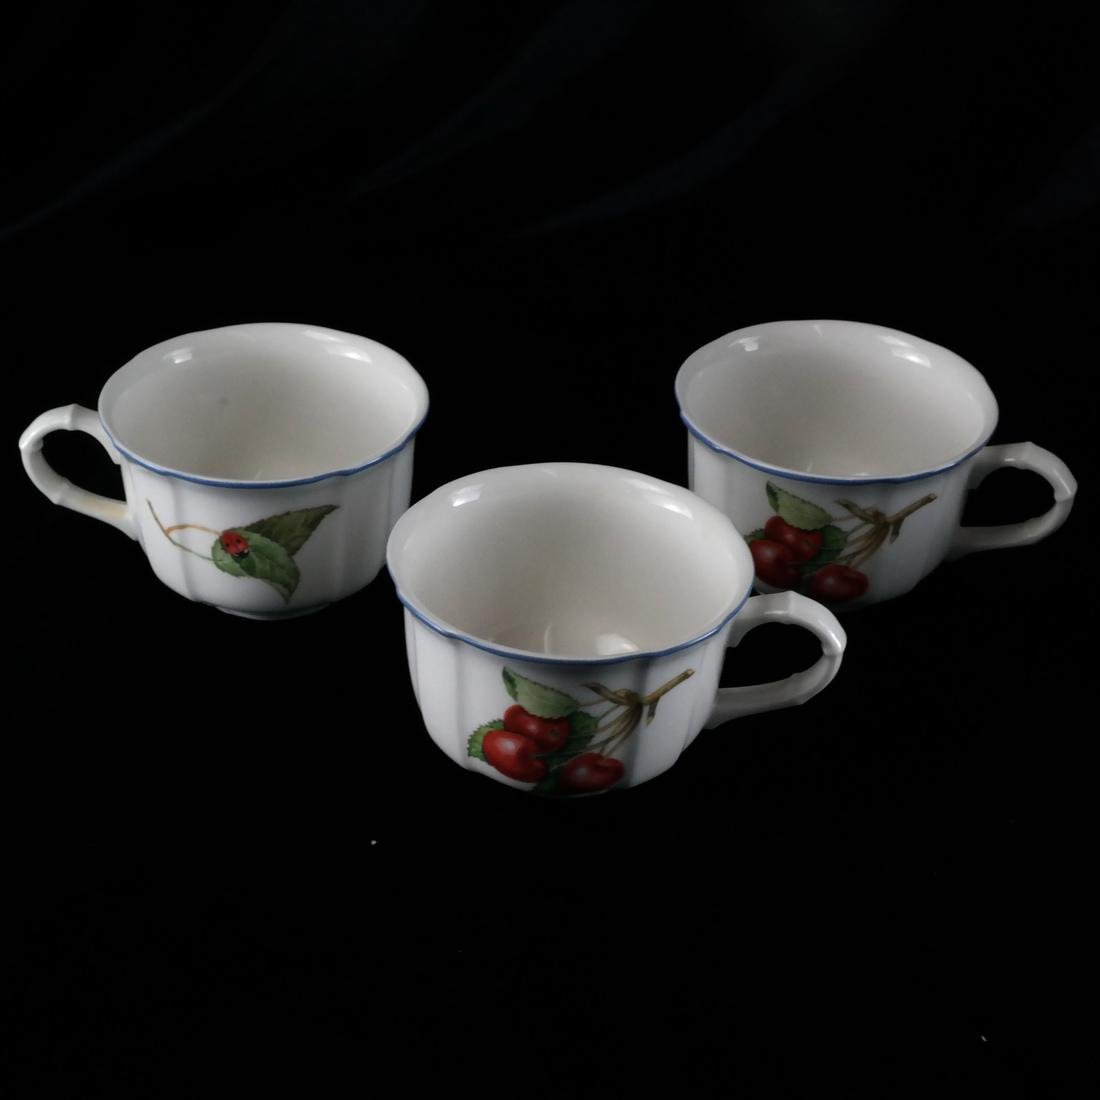 Villery and Boch, Germany: Partial Dinnerware - 3